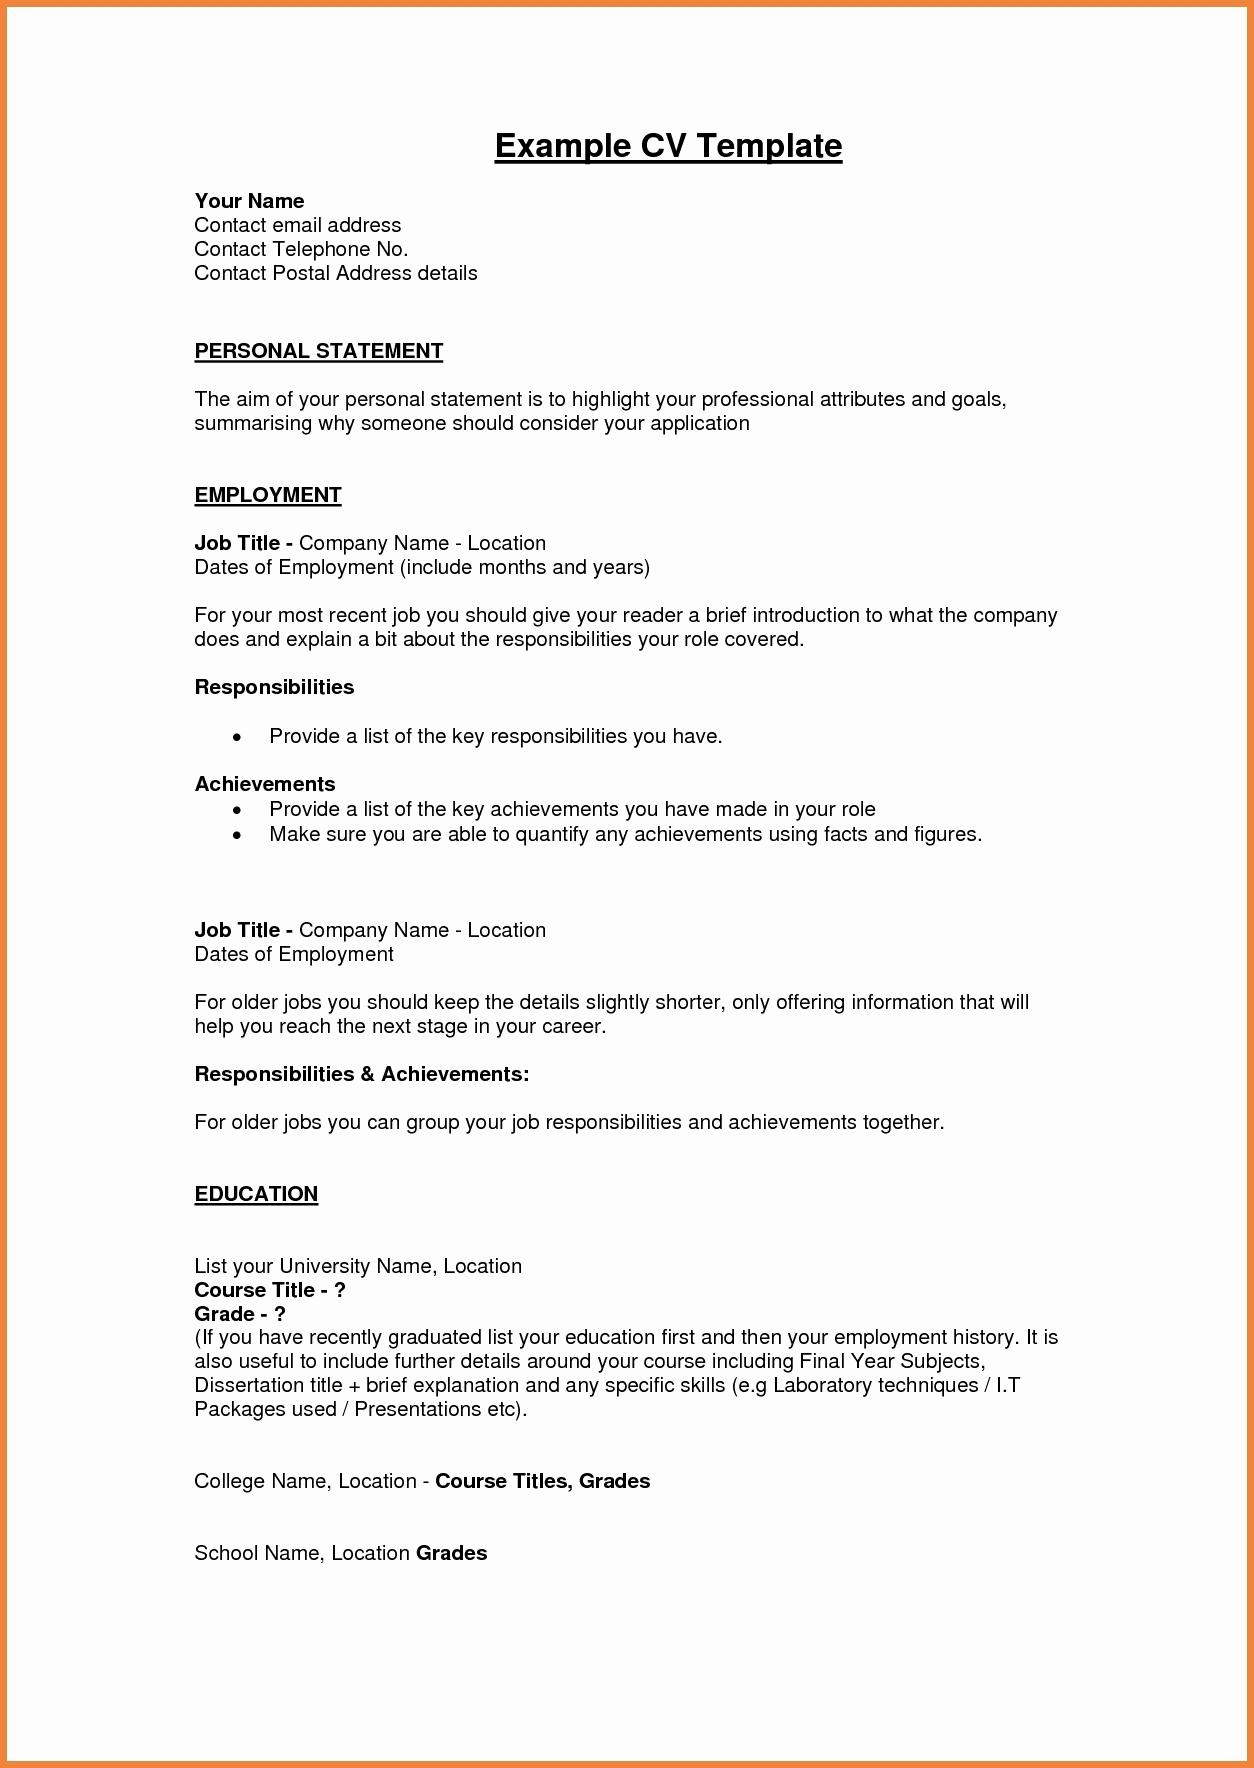 Resume Job Description Examples - Personal Profile format In Resume Luxury Luxury Resume Pdf Beautiful